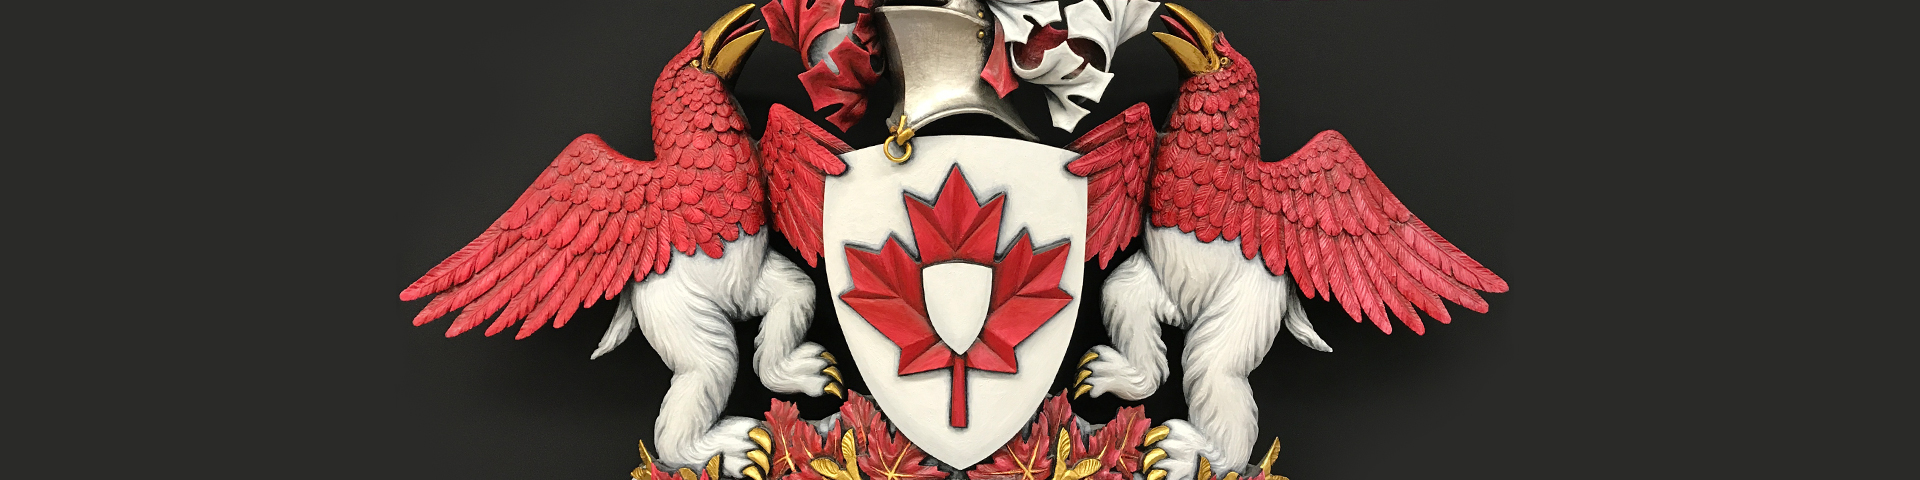 Sculpture of the Canadian Heraldic Authority coat of arms